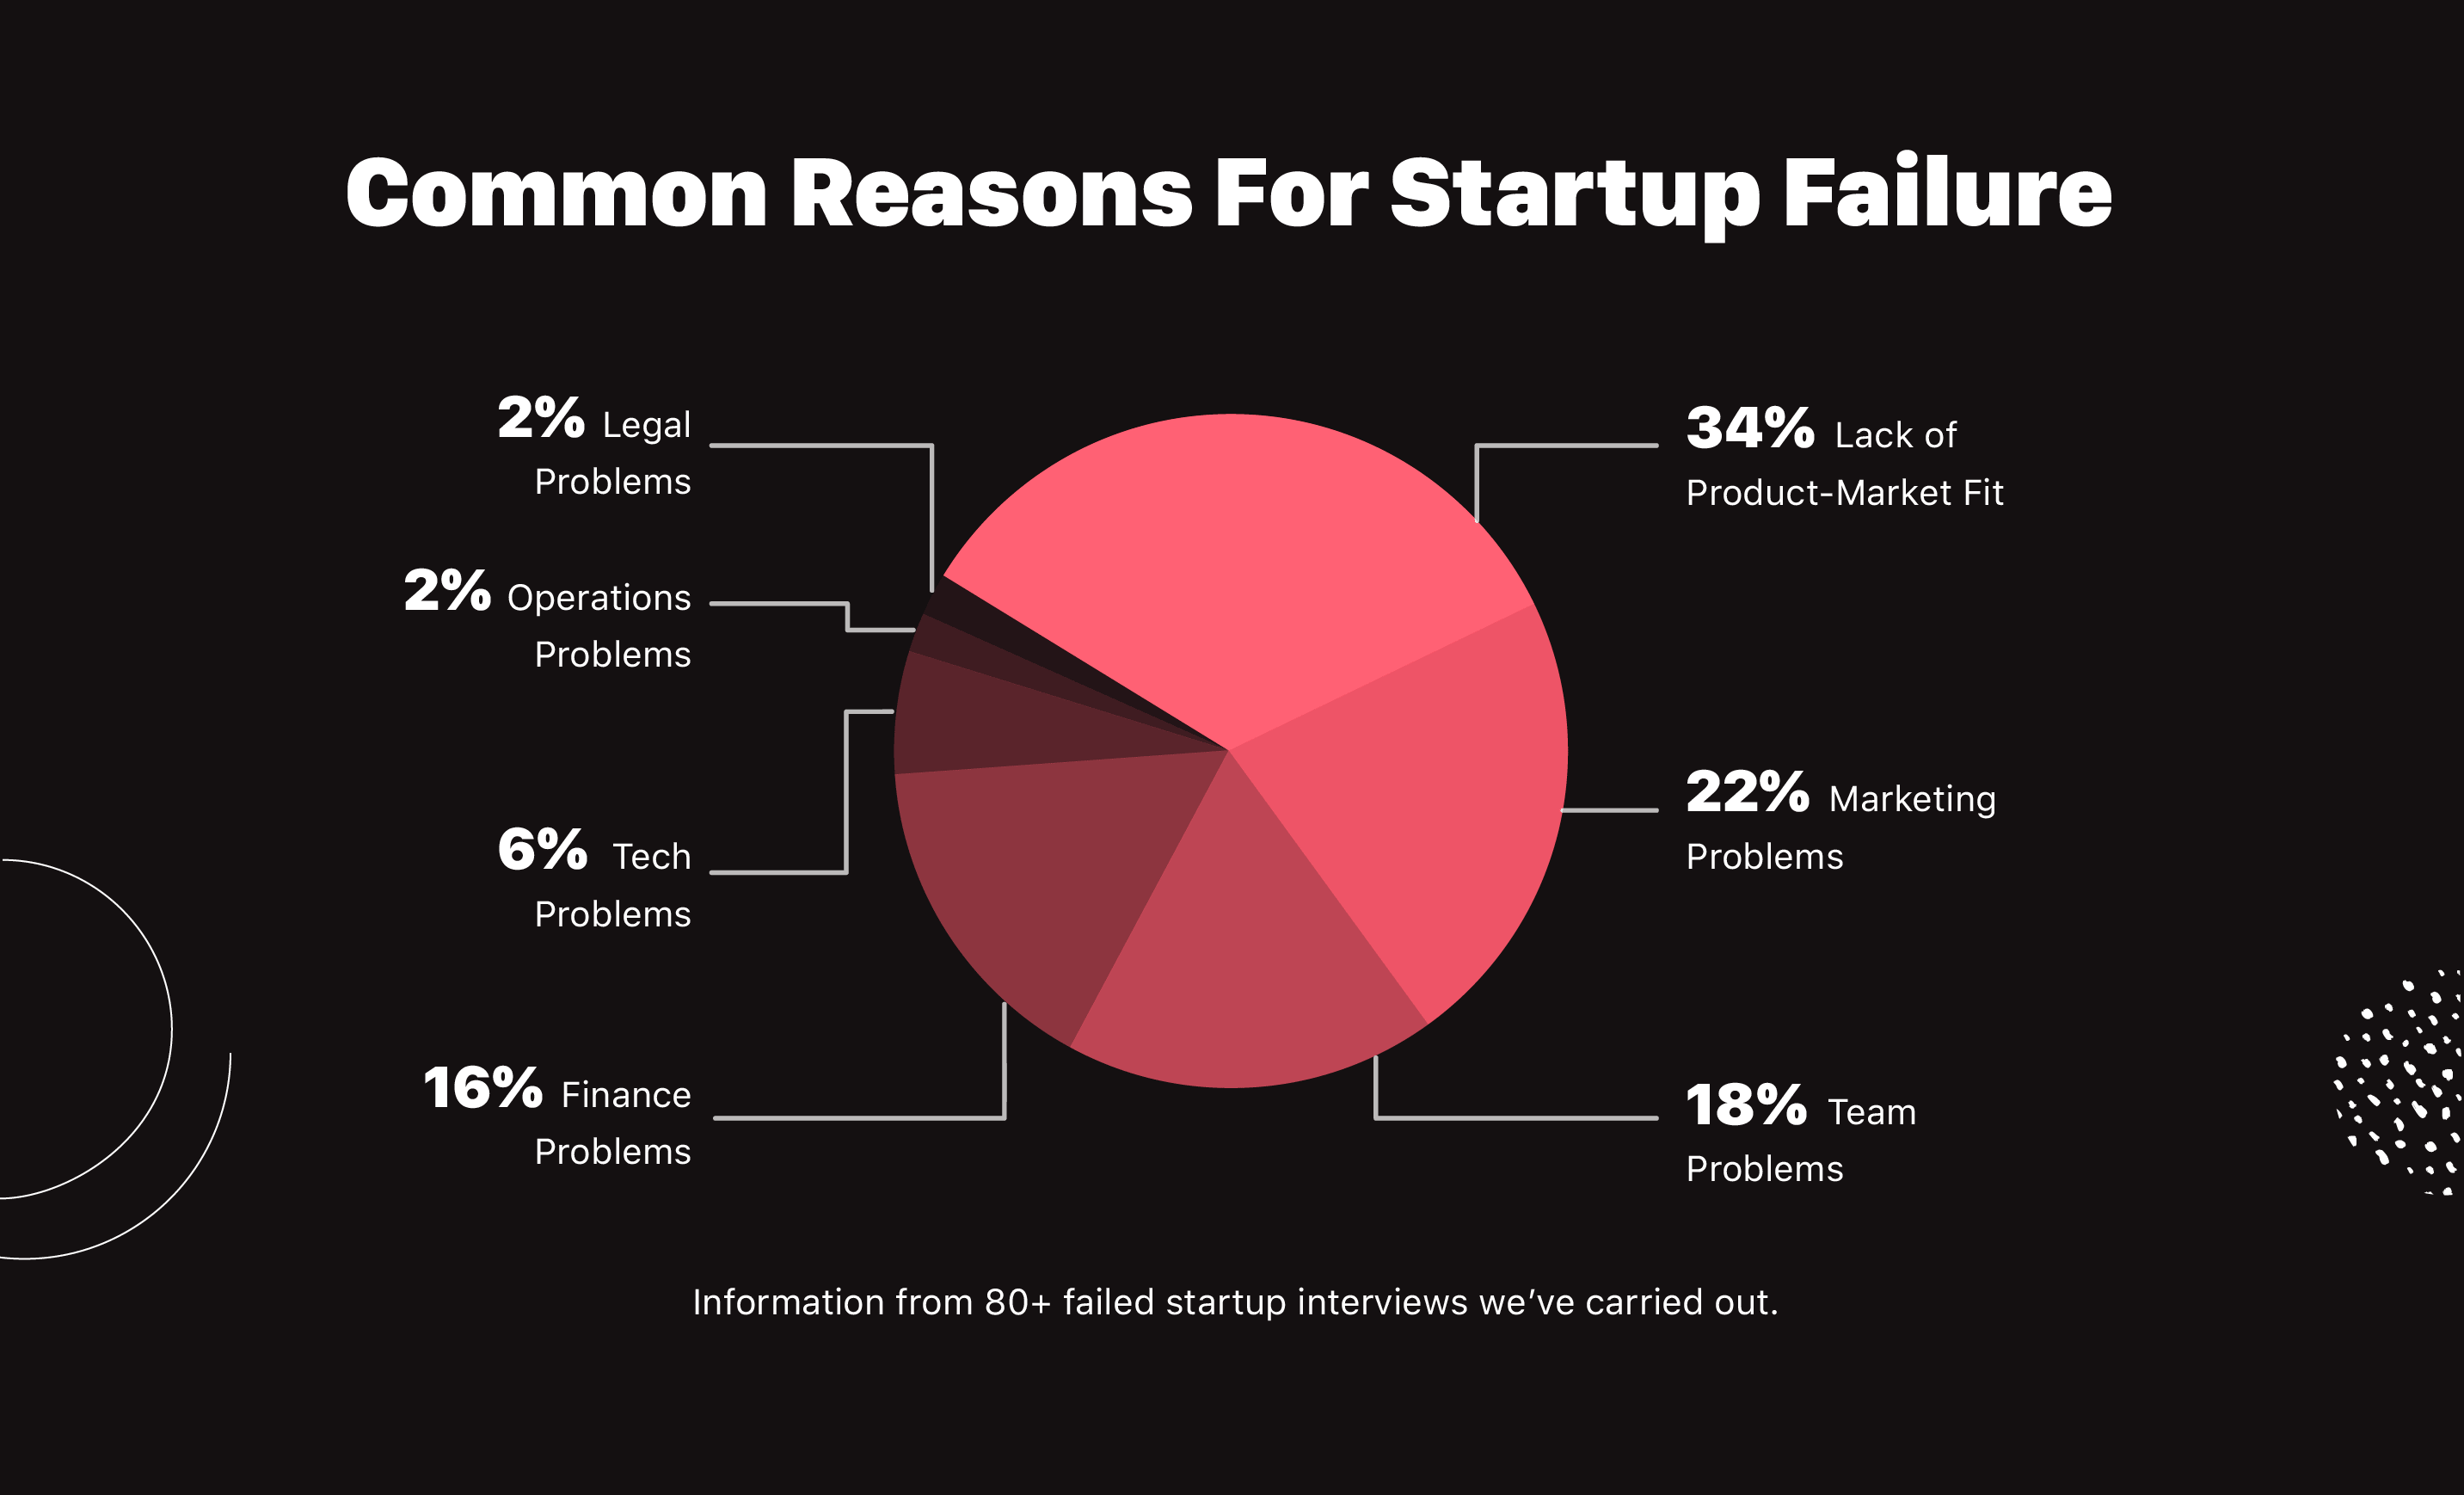 Reasons for Startup Failure